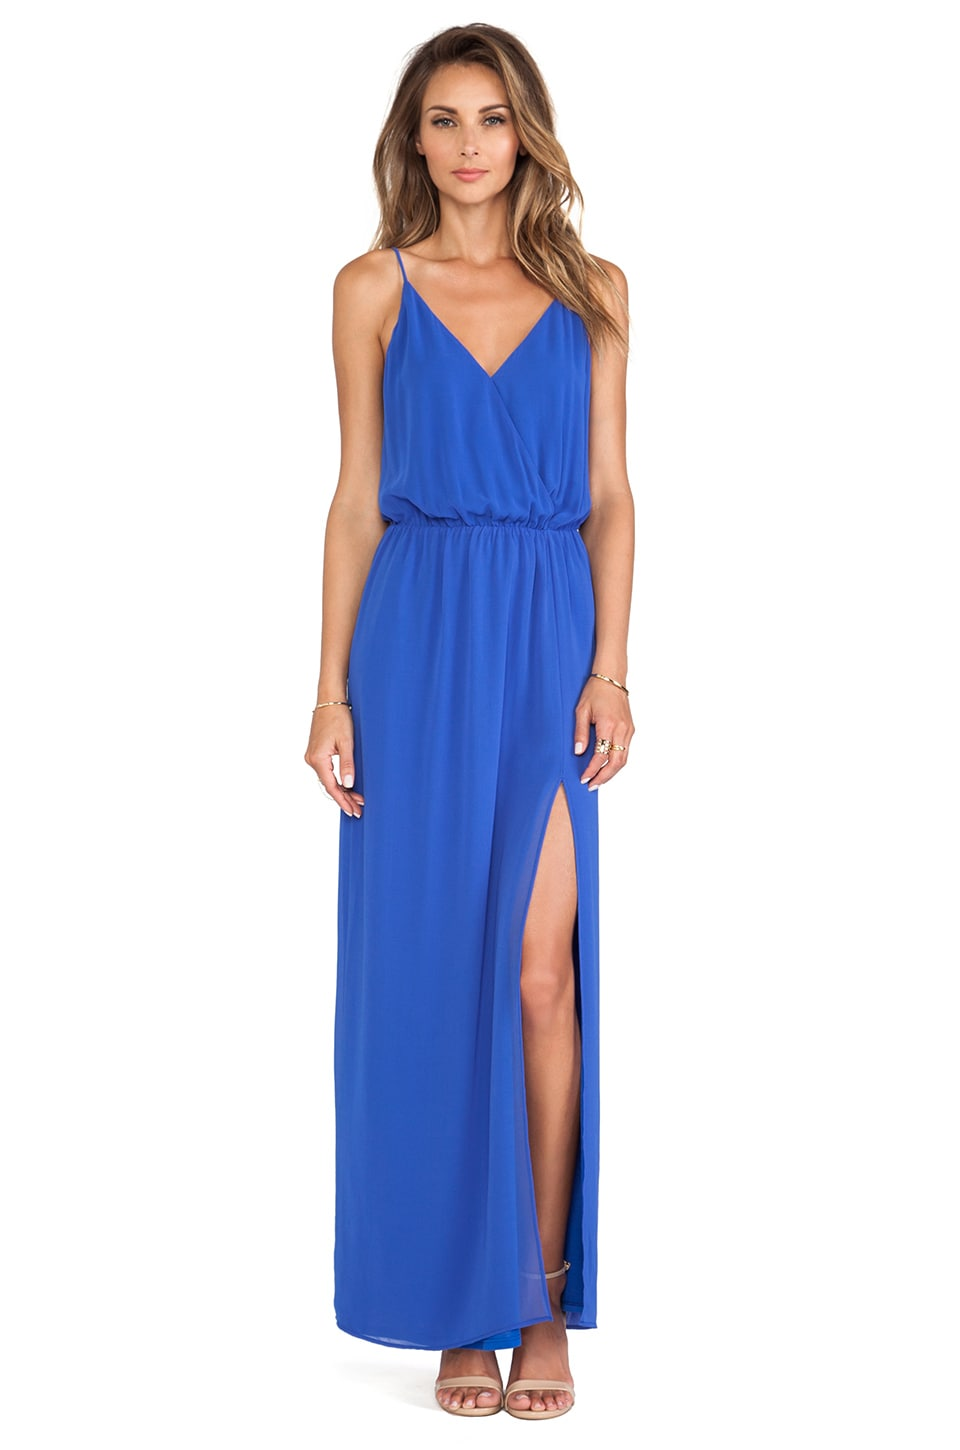 Rory Beca Mare Gown in Chez